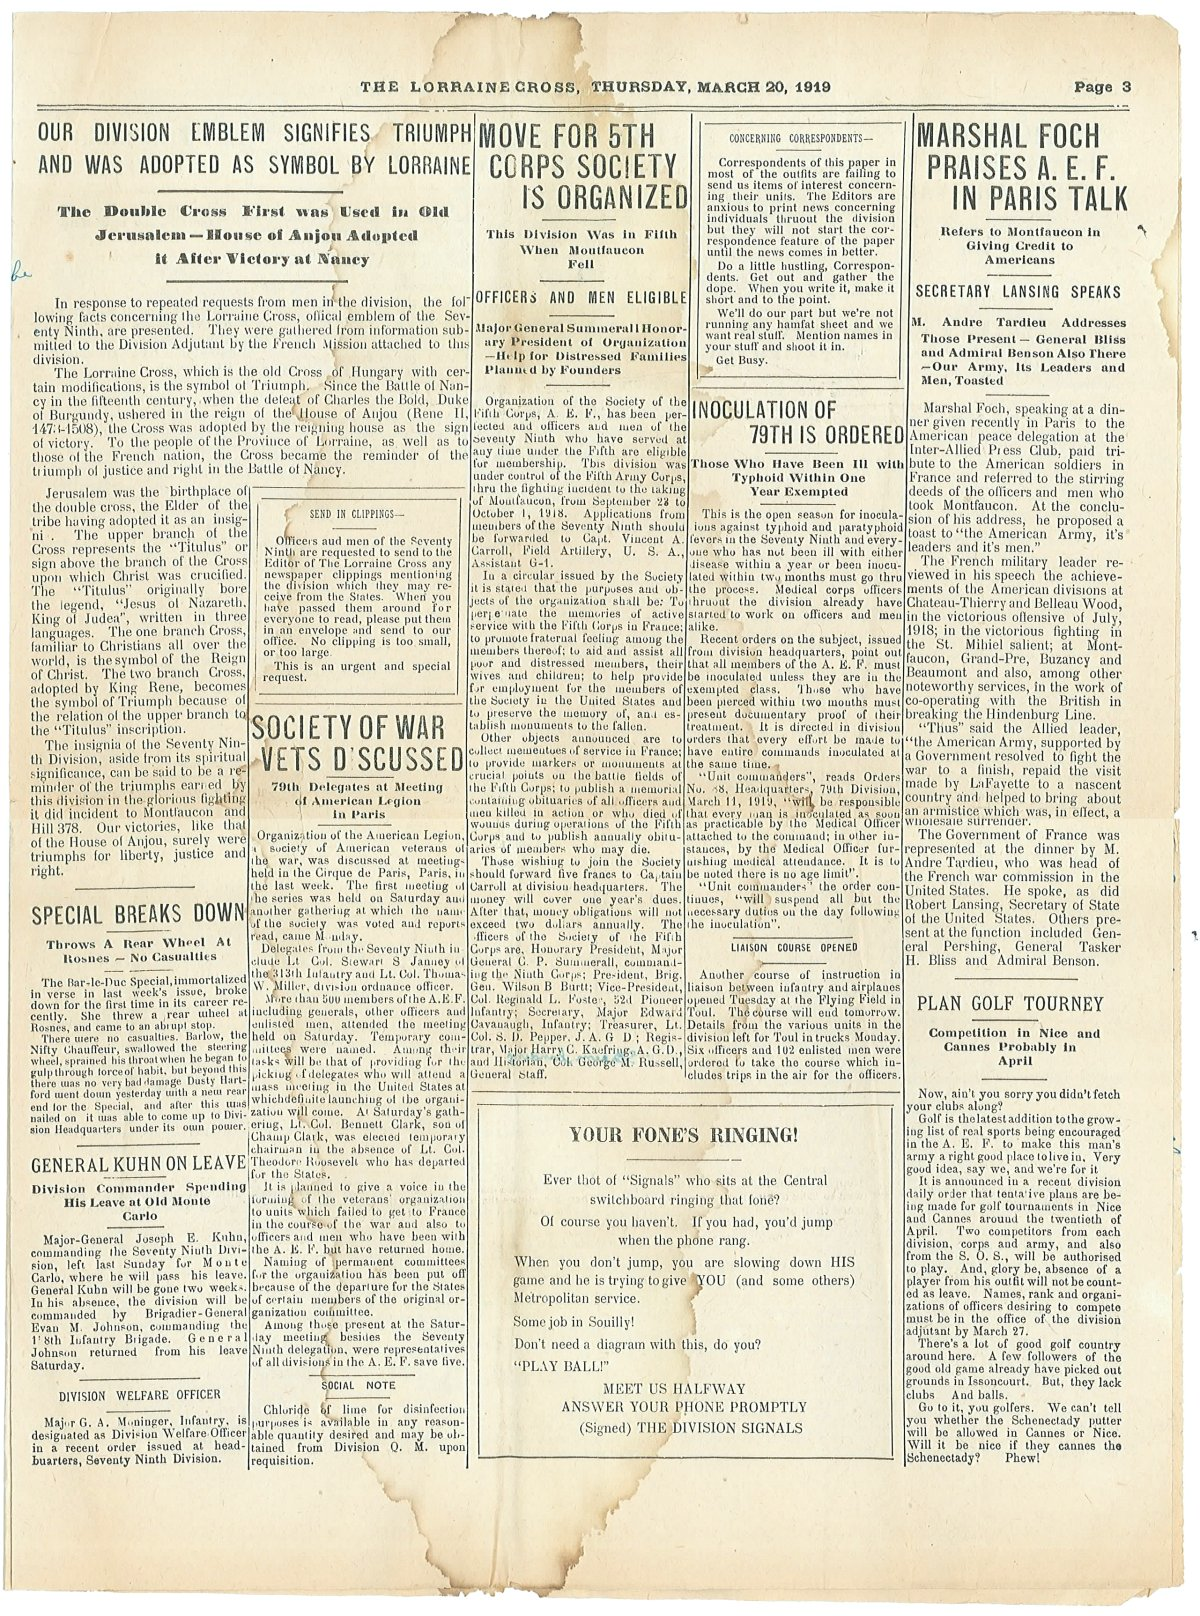 Lorraine Cross Newspaper Volume 1 Number 5 France March 20 1919 Page 3